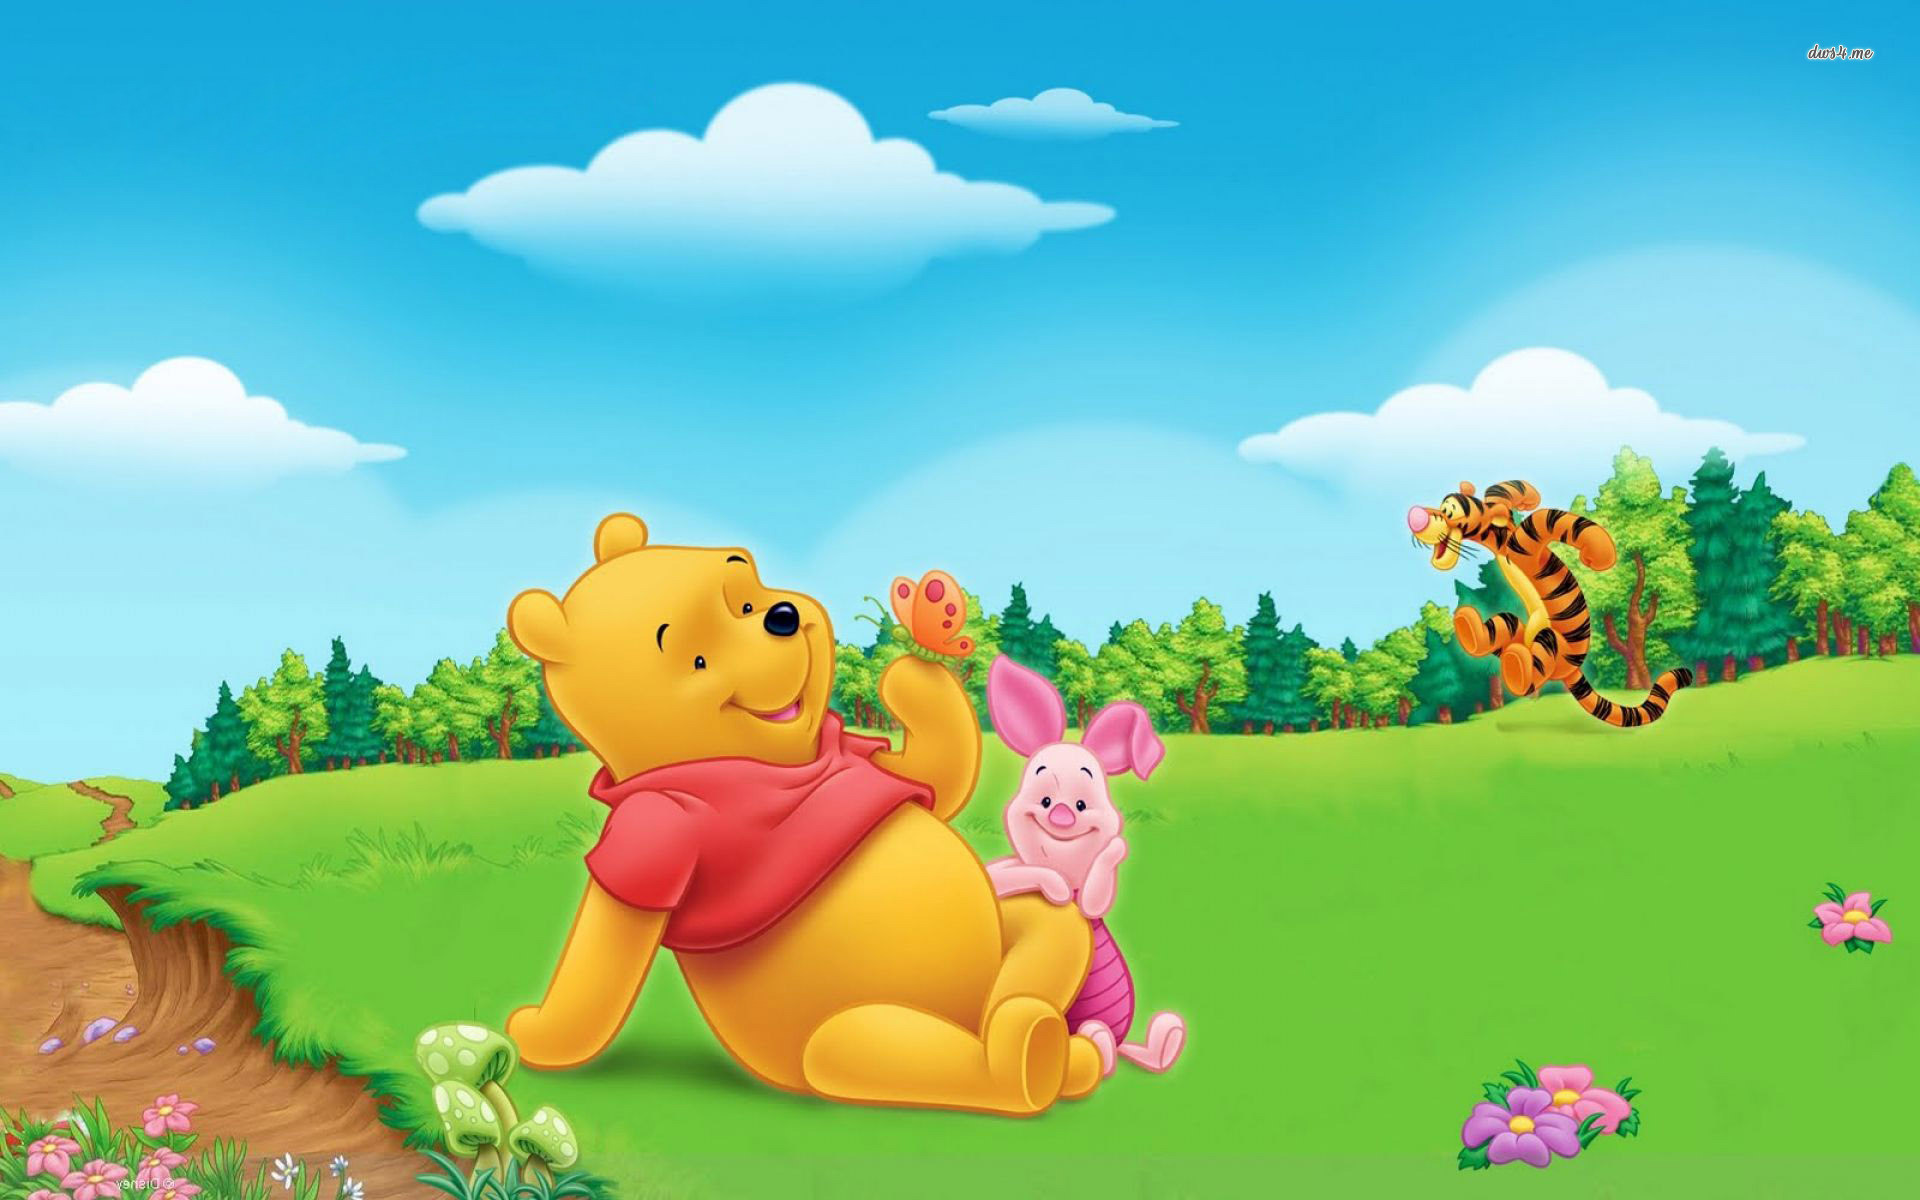 Res: 1920x1200, www winnie the pooh wallpaper com backgrounds high resolution disney  cartoon winnie the pooh hd full with wallpaper of pics computer